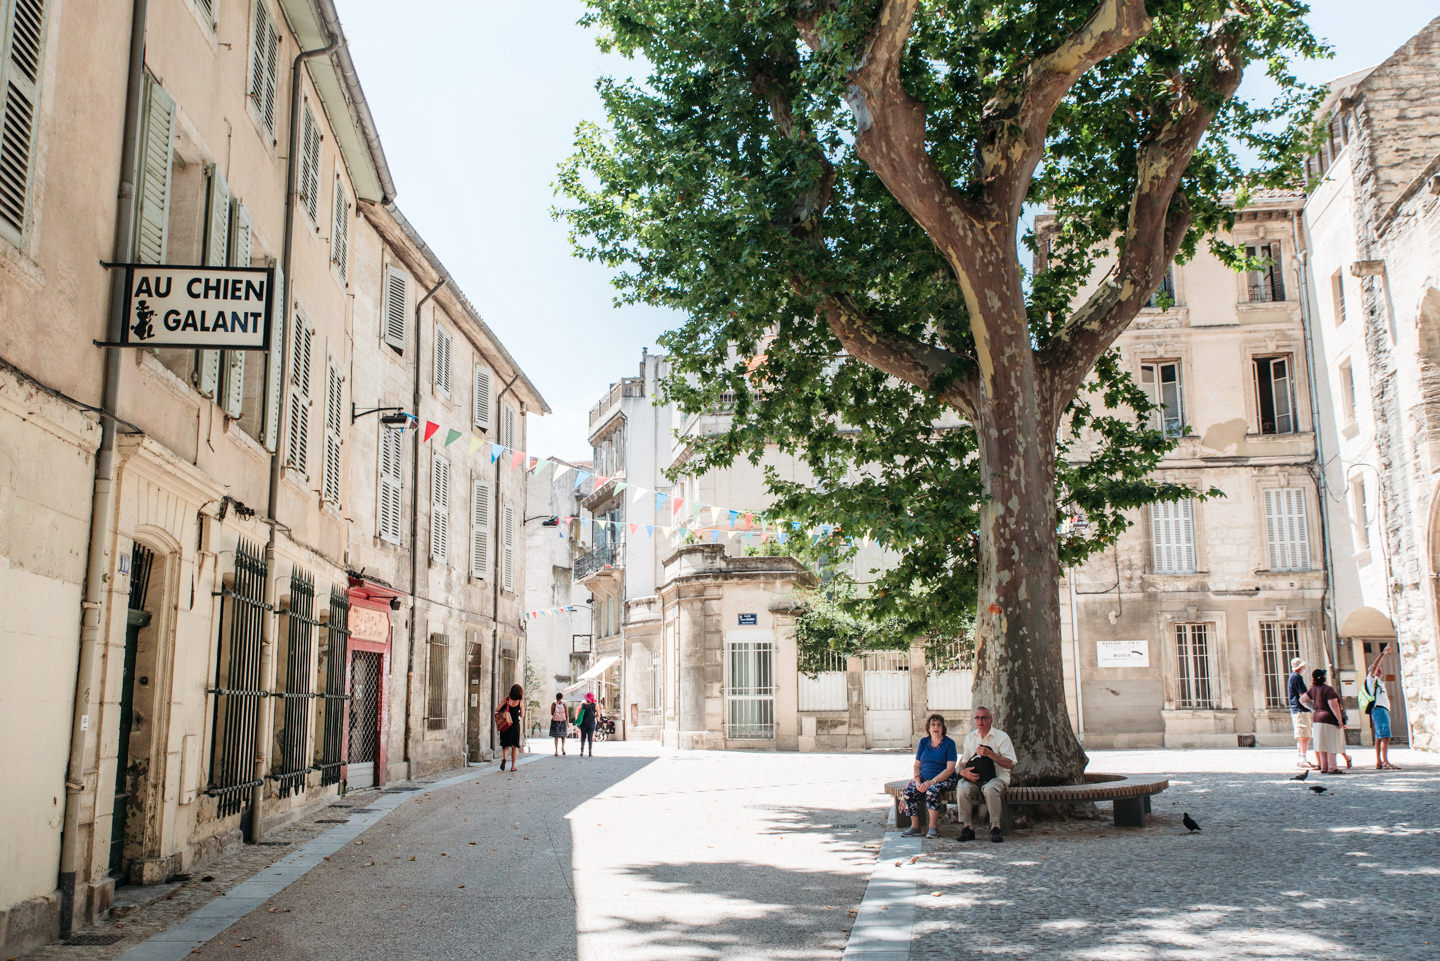 Blog-Mode-And-The-City-Lifestyle-Voyage-Avignon-Mas-Des-Herbes-Blanches